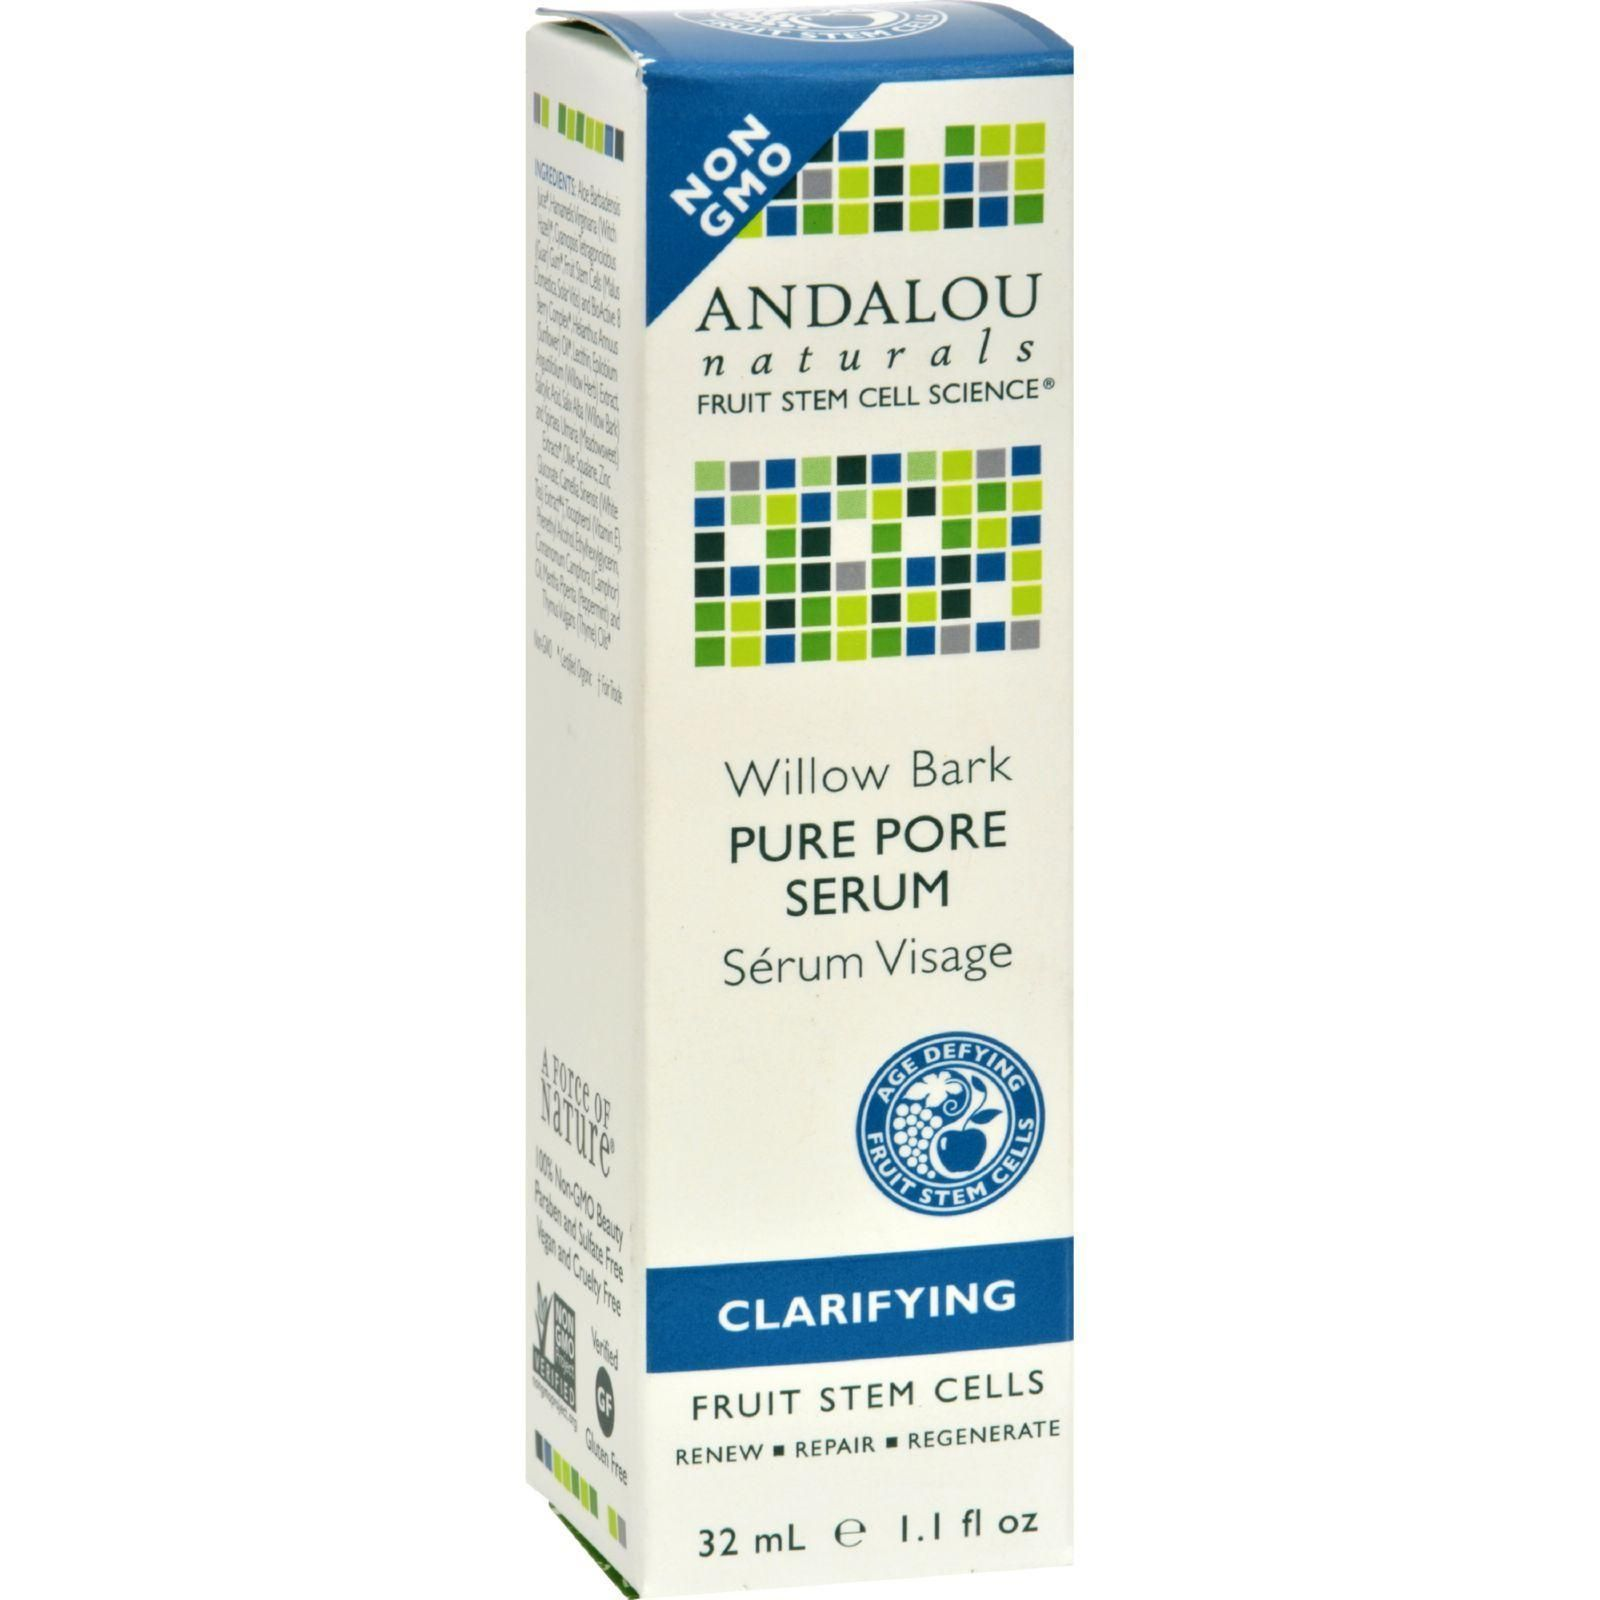 Andalou Naturals Clarifying Willow Bark Pure Pore Serum -- 1.1 fl oz Valmont - Elixir Des Glaciers Serum Precieux Votre Visage - Swiss Poly-Active Essence (New Packing) -30ml/1oz